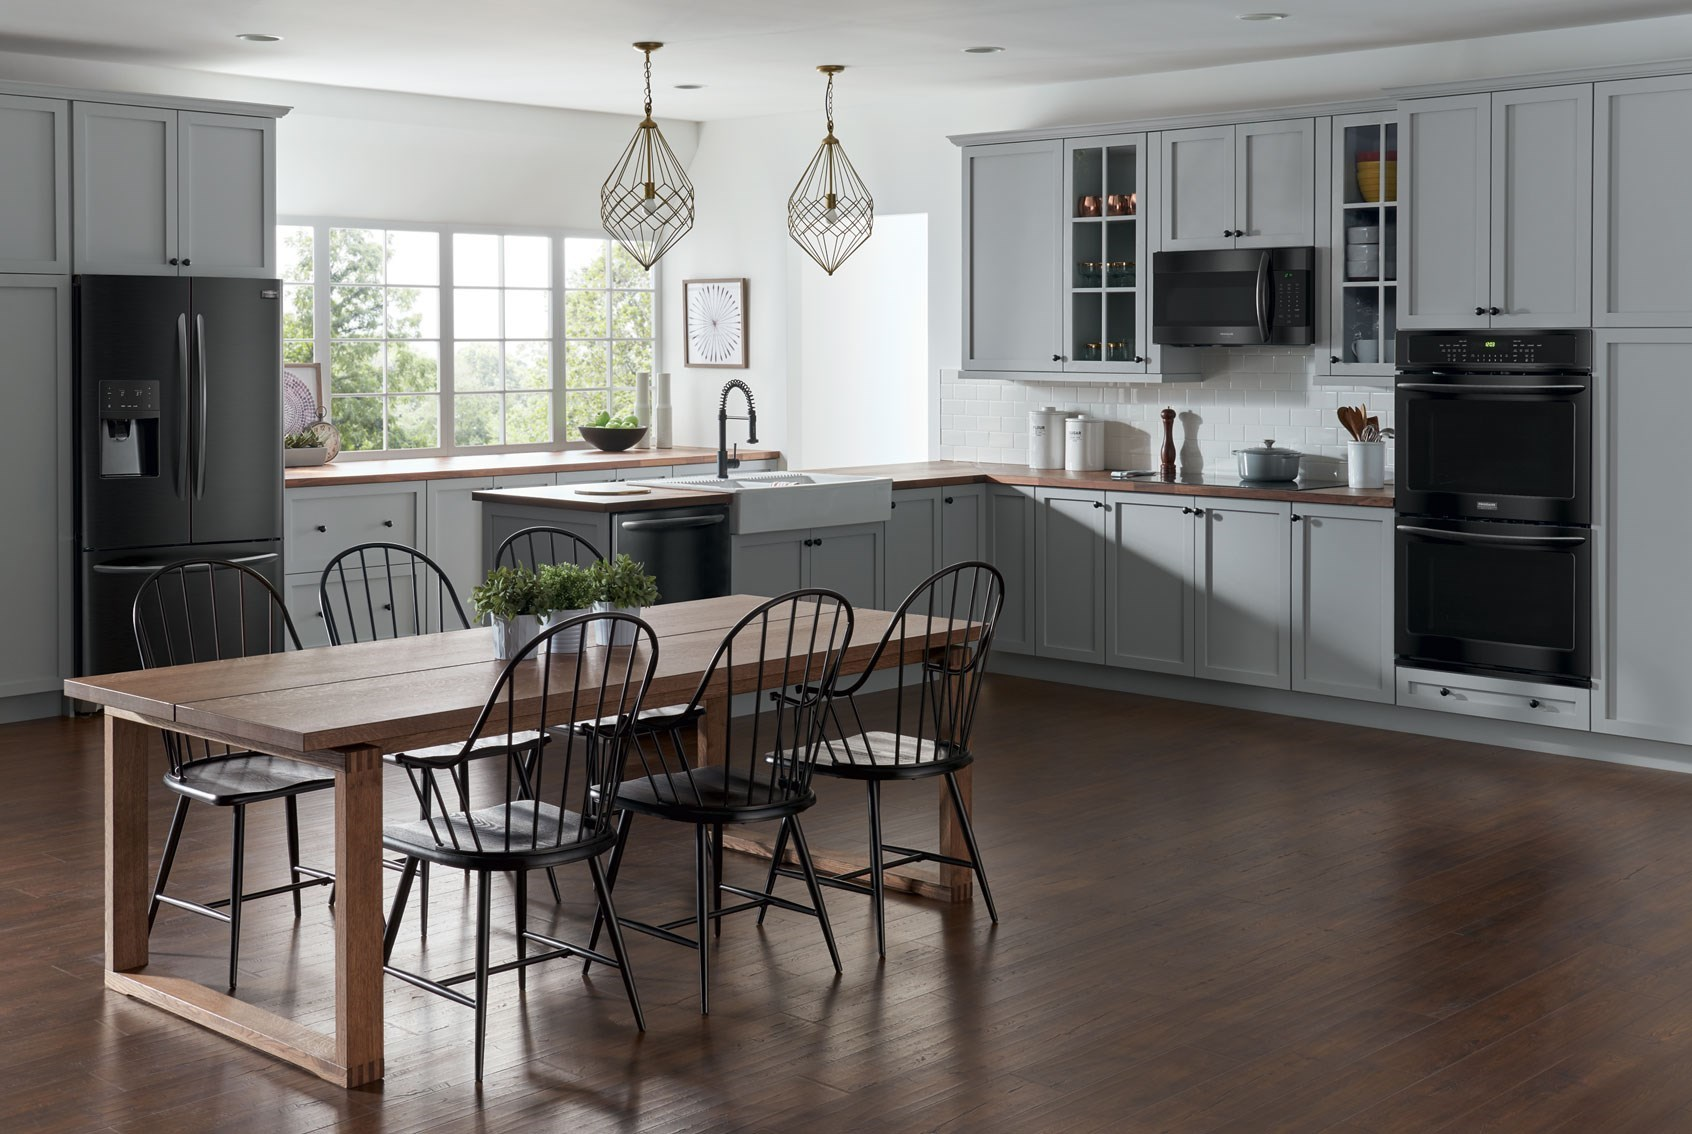 Genial Kitchen Appliances: Must Have Trends   RONA